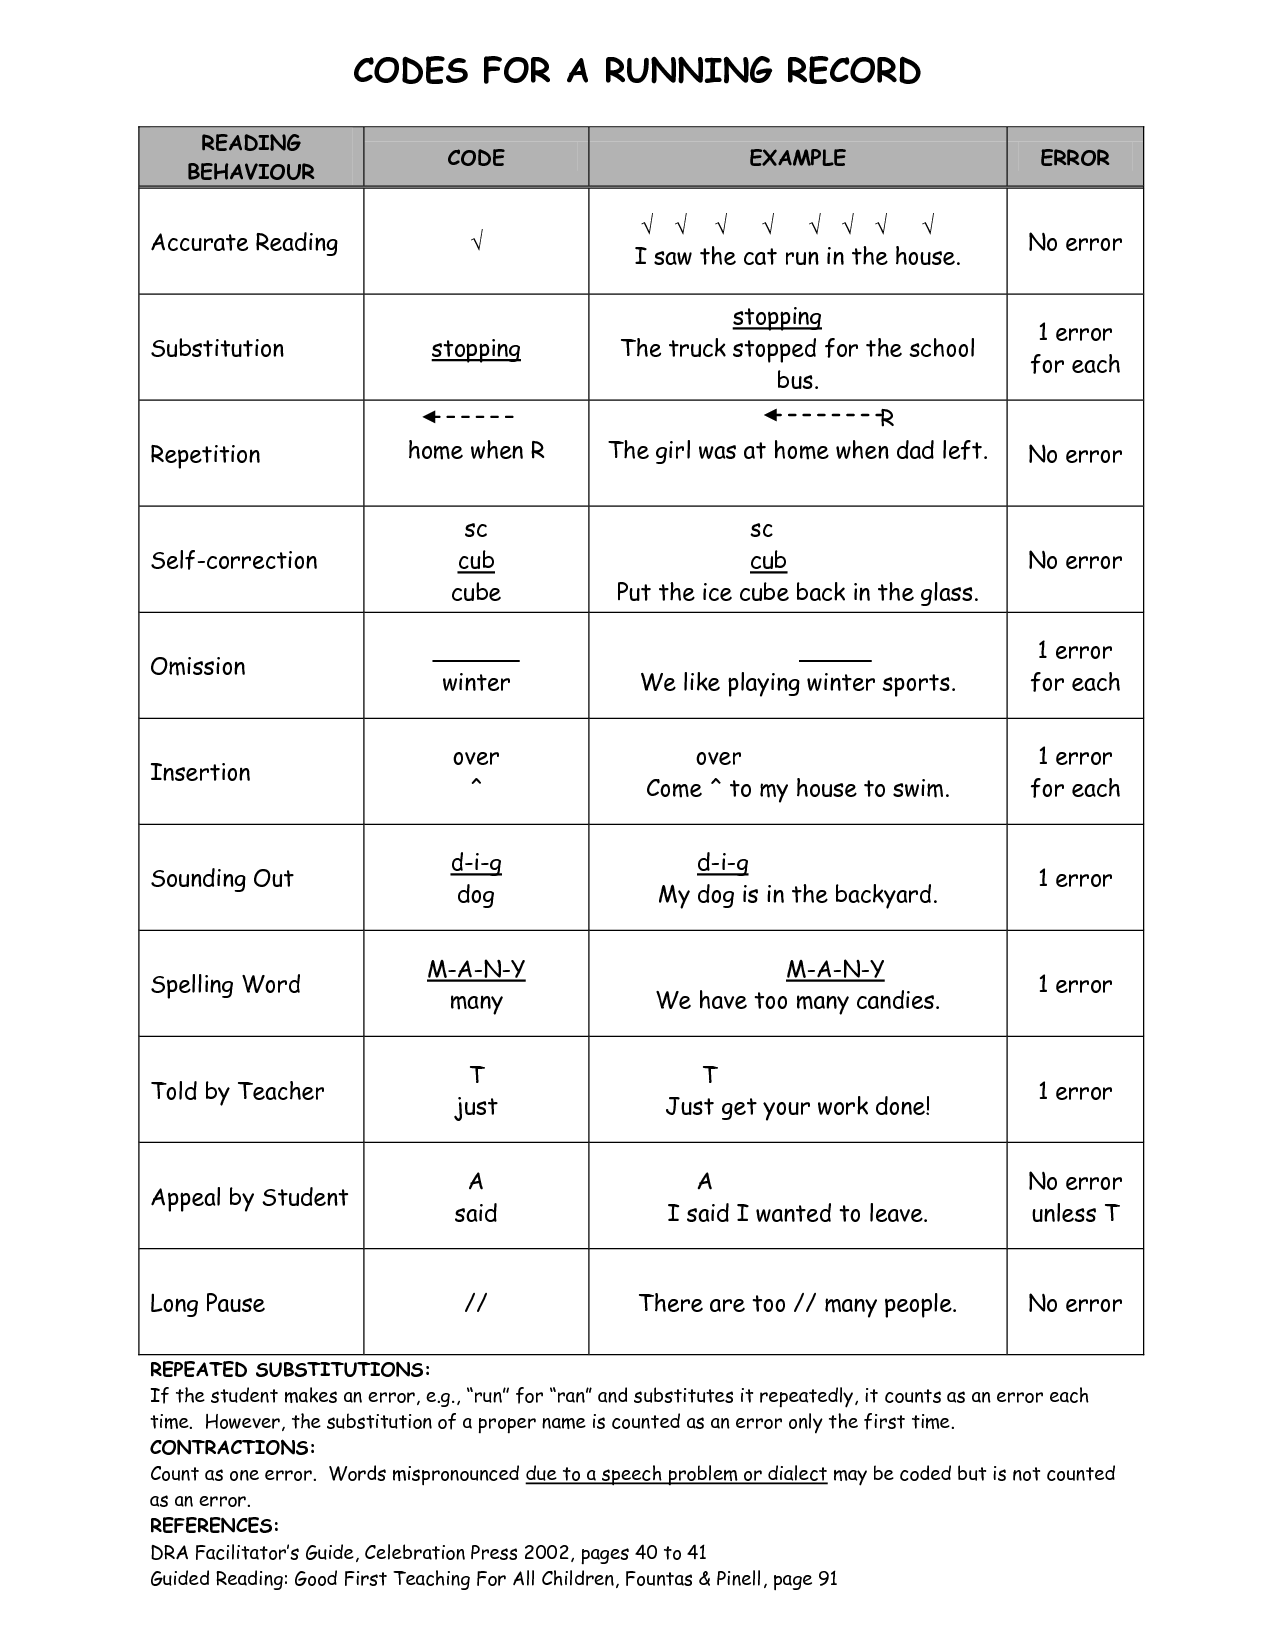 A Handy Sheet With Running Record Codes Which Are Important For Assessing Students Reading